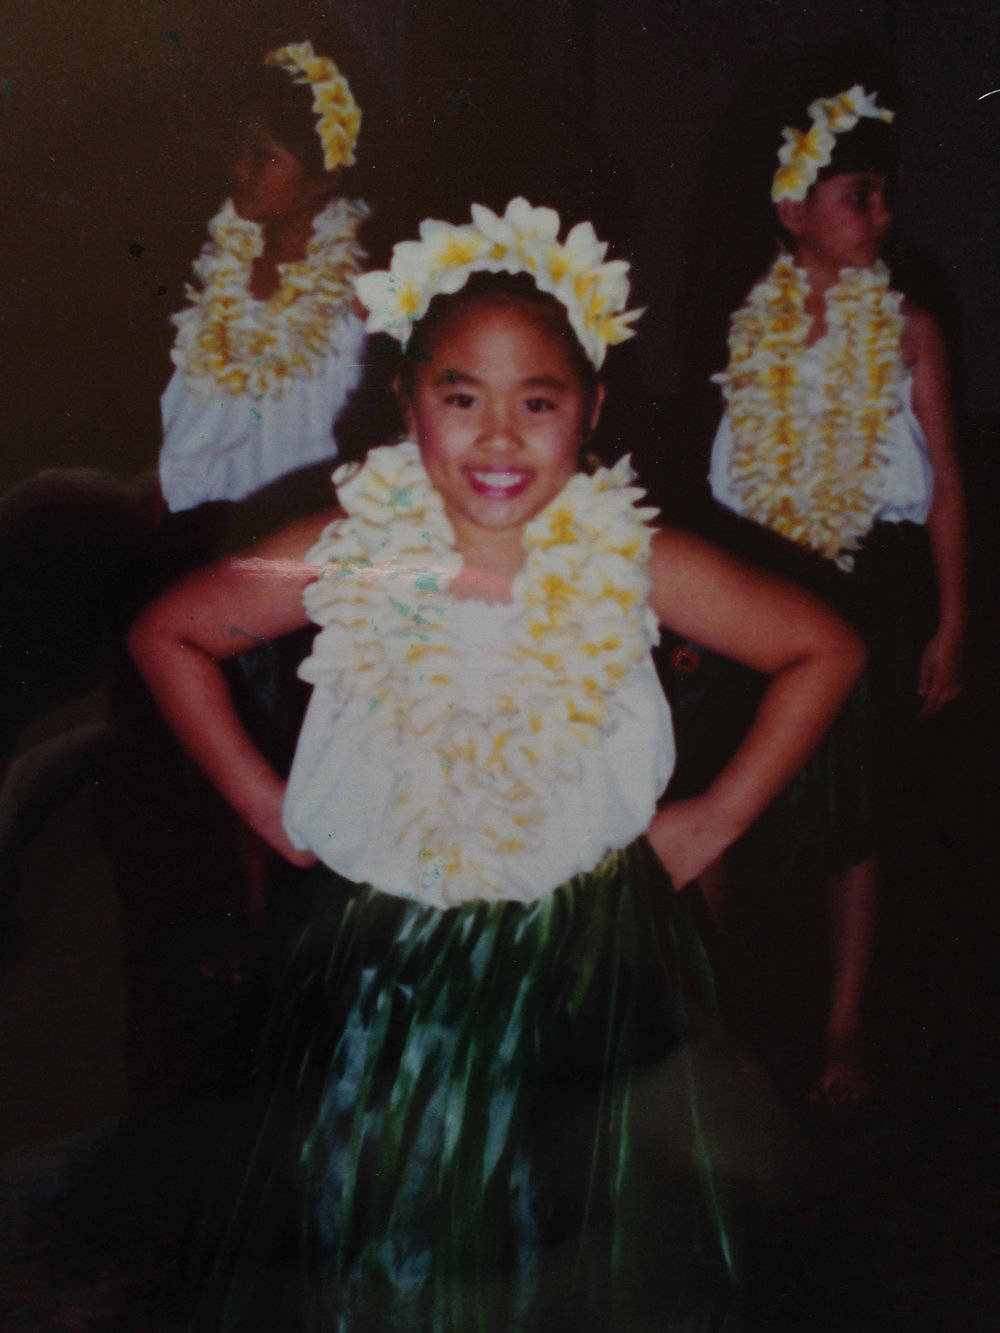 My passion for all things beauty started as a young hula dancer. Here's me at age 7 at a hula performance. Learn more about me and my passion for makeup, hair and skincare on my beautyblog, beautybyjessika.com.